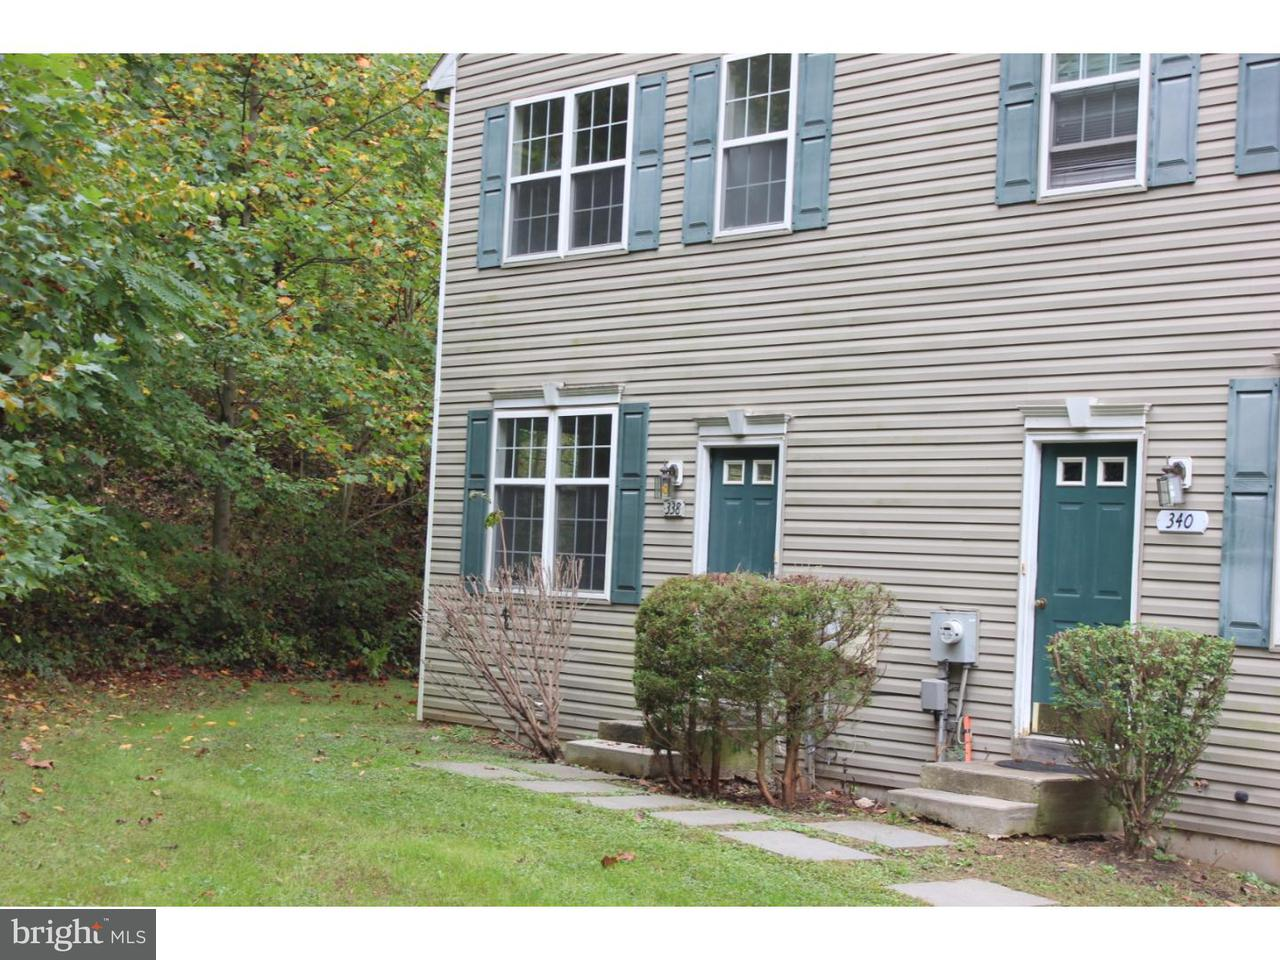 Townhouse for Rent at 338 ELIOT Circle Coatesville, Pennsylvania 19320 United States